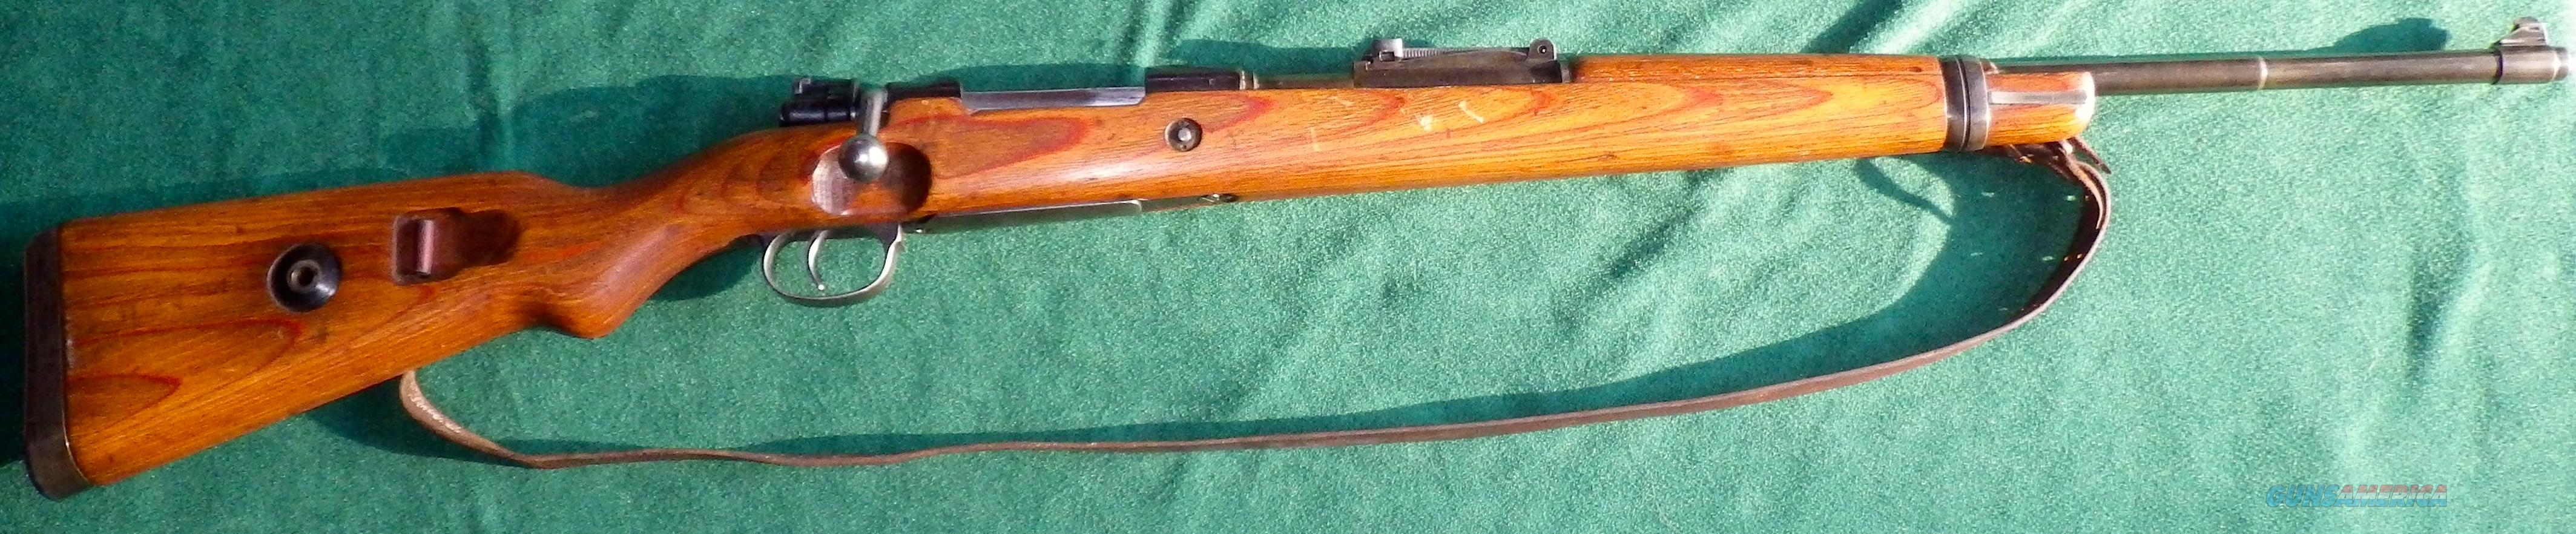 BRNO military bolt action  Guns > Rifles > BRNO Rifles